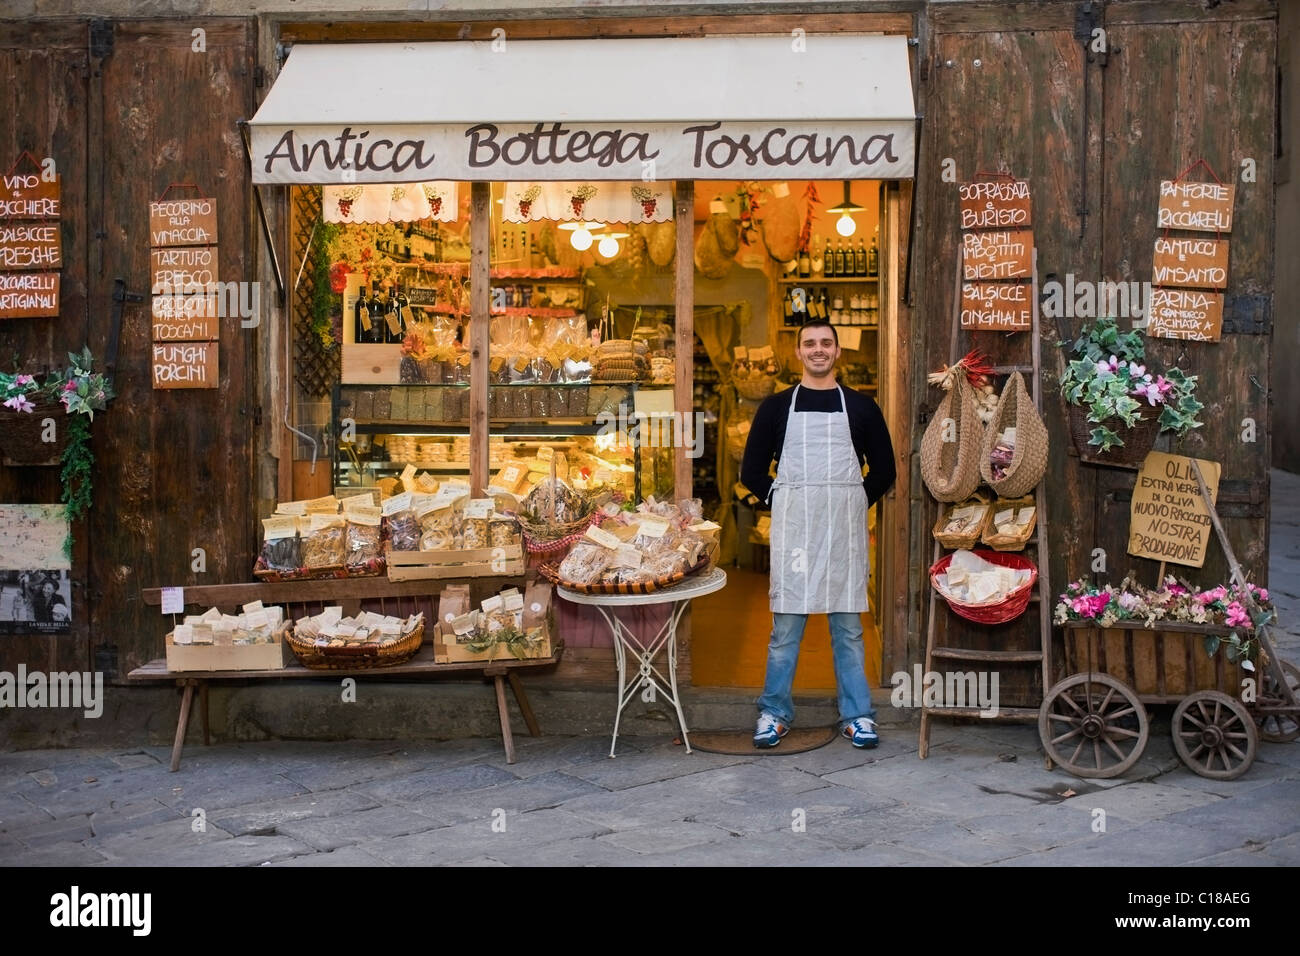 Owner standing in front of deli - Stock Image